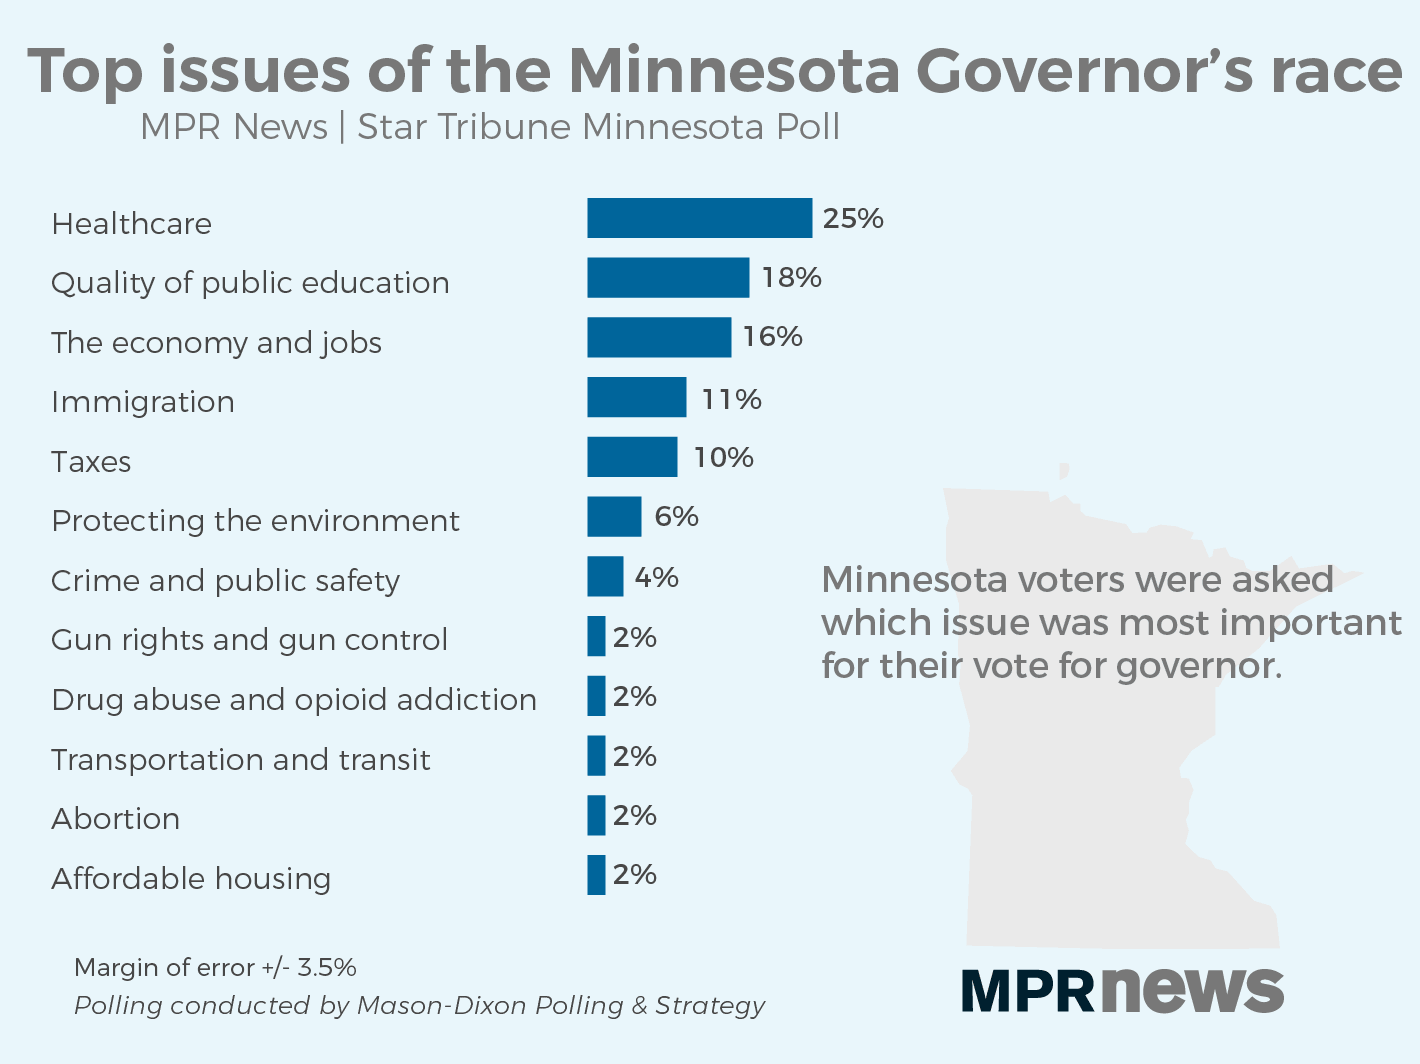 The most important issue to voters for the governor's race